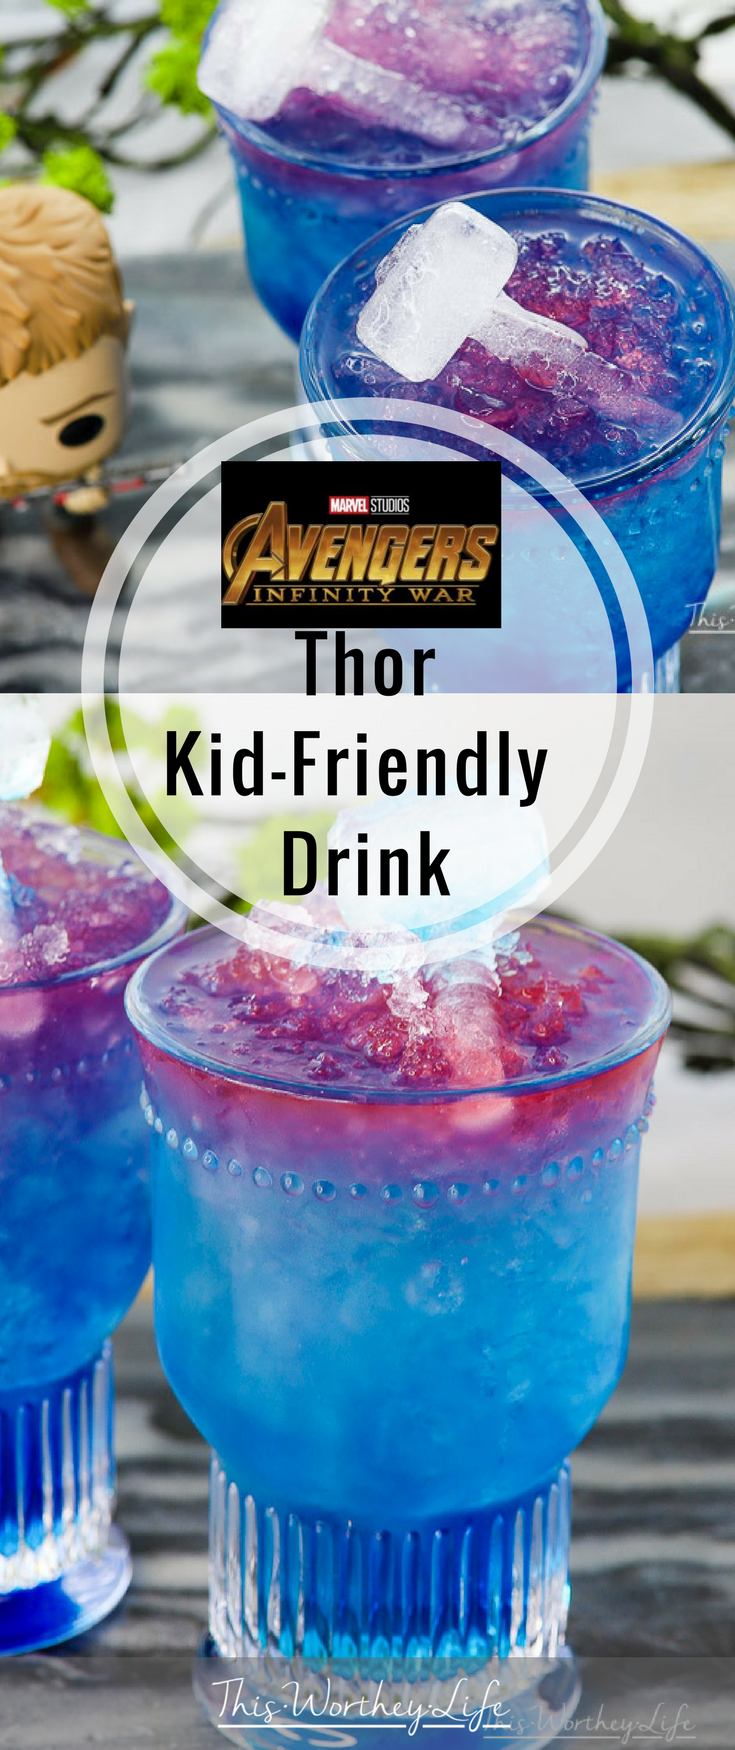 Marvel's Avengers: Infinity War drops April 27th! We're counting down with fun ideas! Try our Avenger's Thor Kid-Drink. This is a Thor drink the whole family can enjoy. Plus, with Thor inspired birthday parties and watch parties, you will want this colorful kid-drink on your menu. Get the recipe and watch the newest Infinity War trailer on the blog!